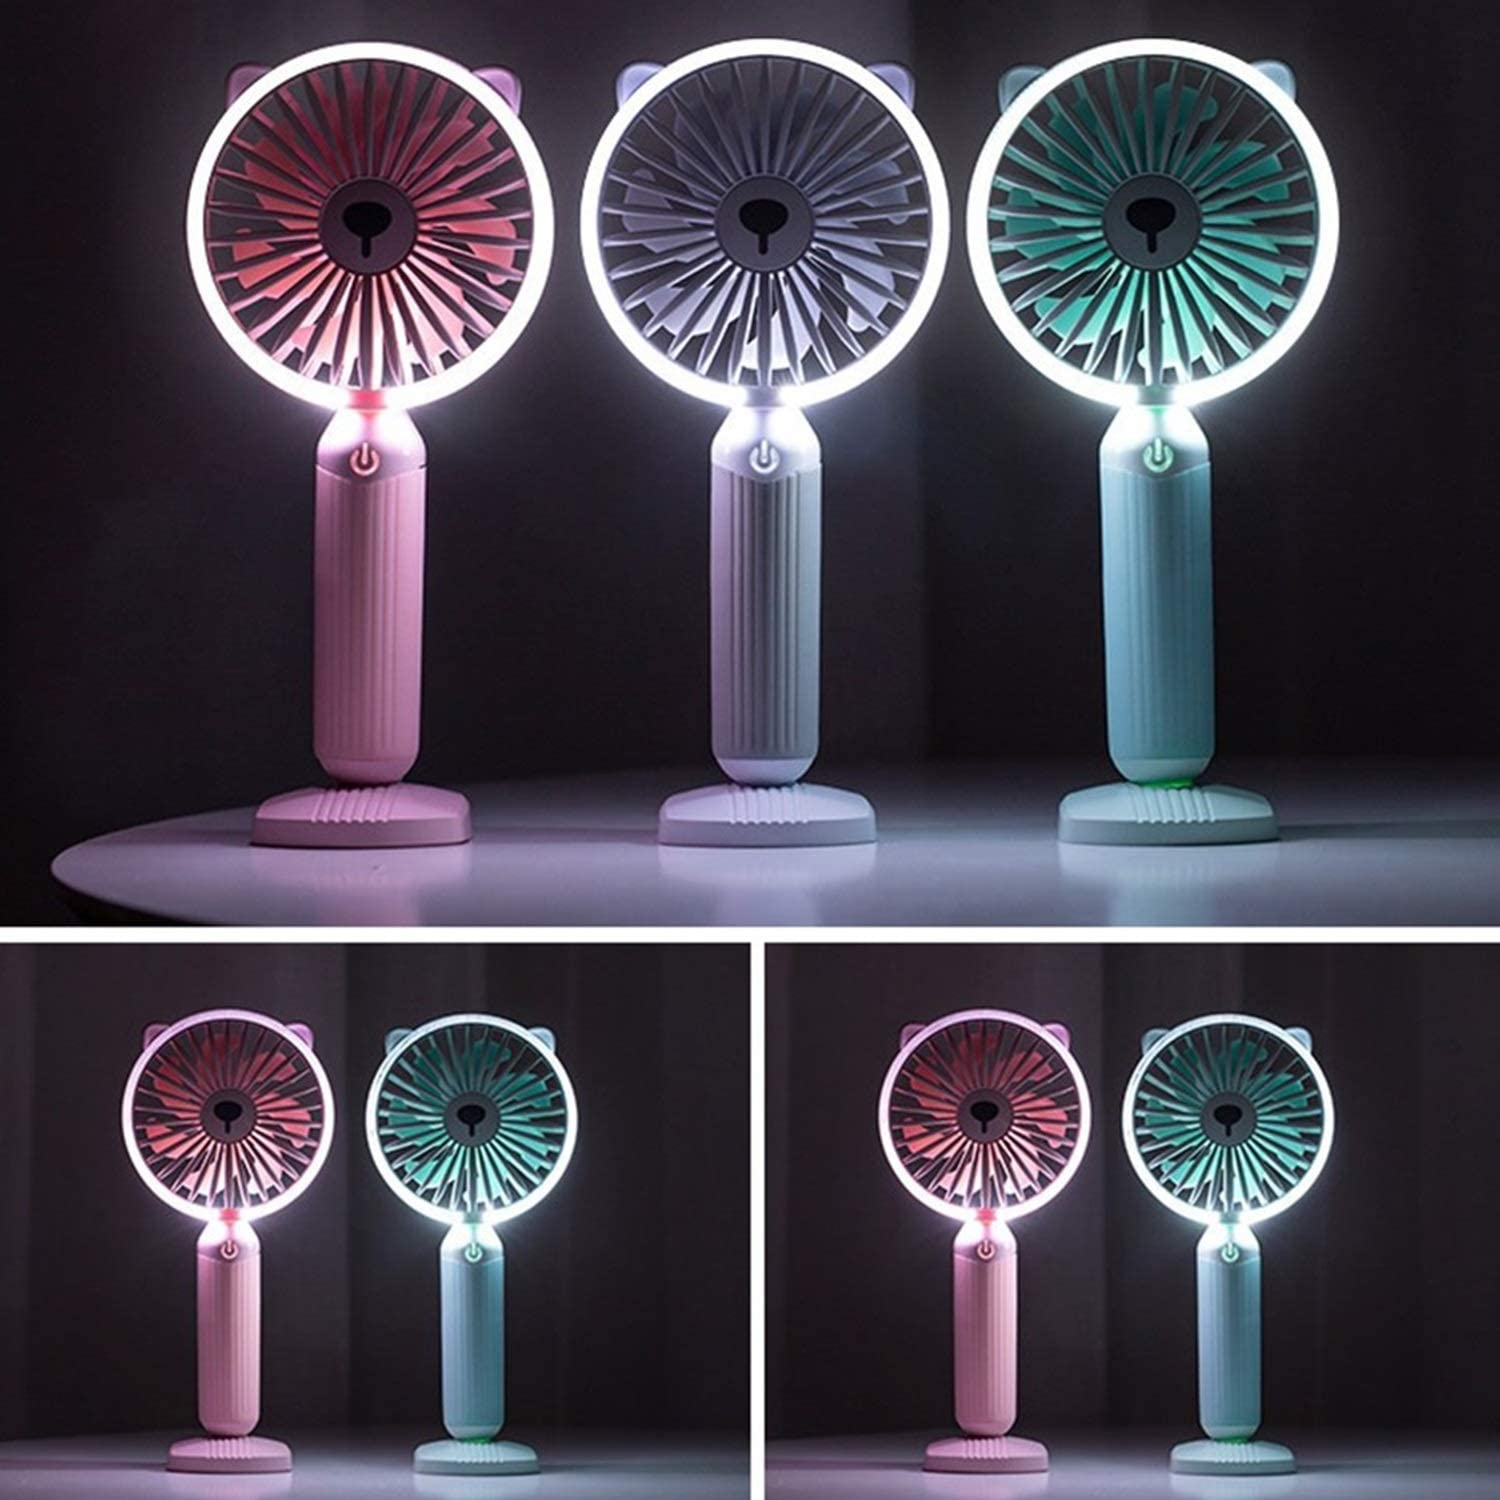 Mini Portable Cooling Fan USB Fan LED Night Light Portable Handheld Fan 7 Blades 3 Gear Wind Speed Summer Cooling Fan Bedside Color : Green